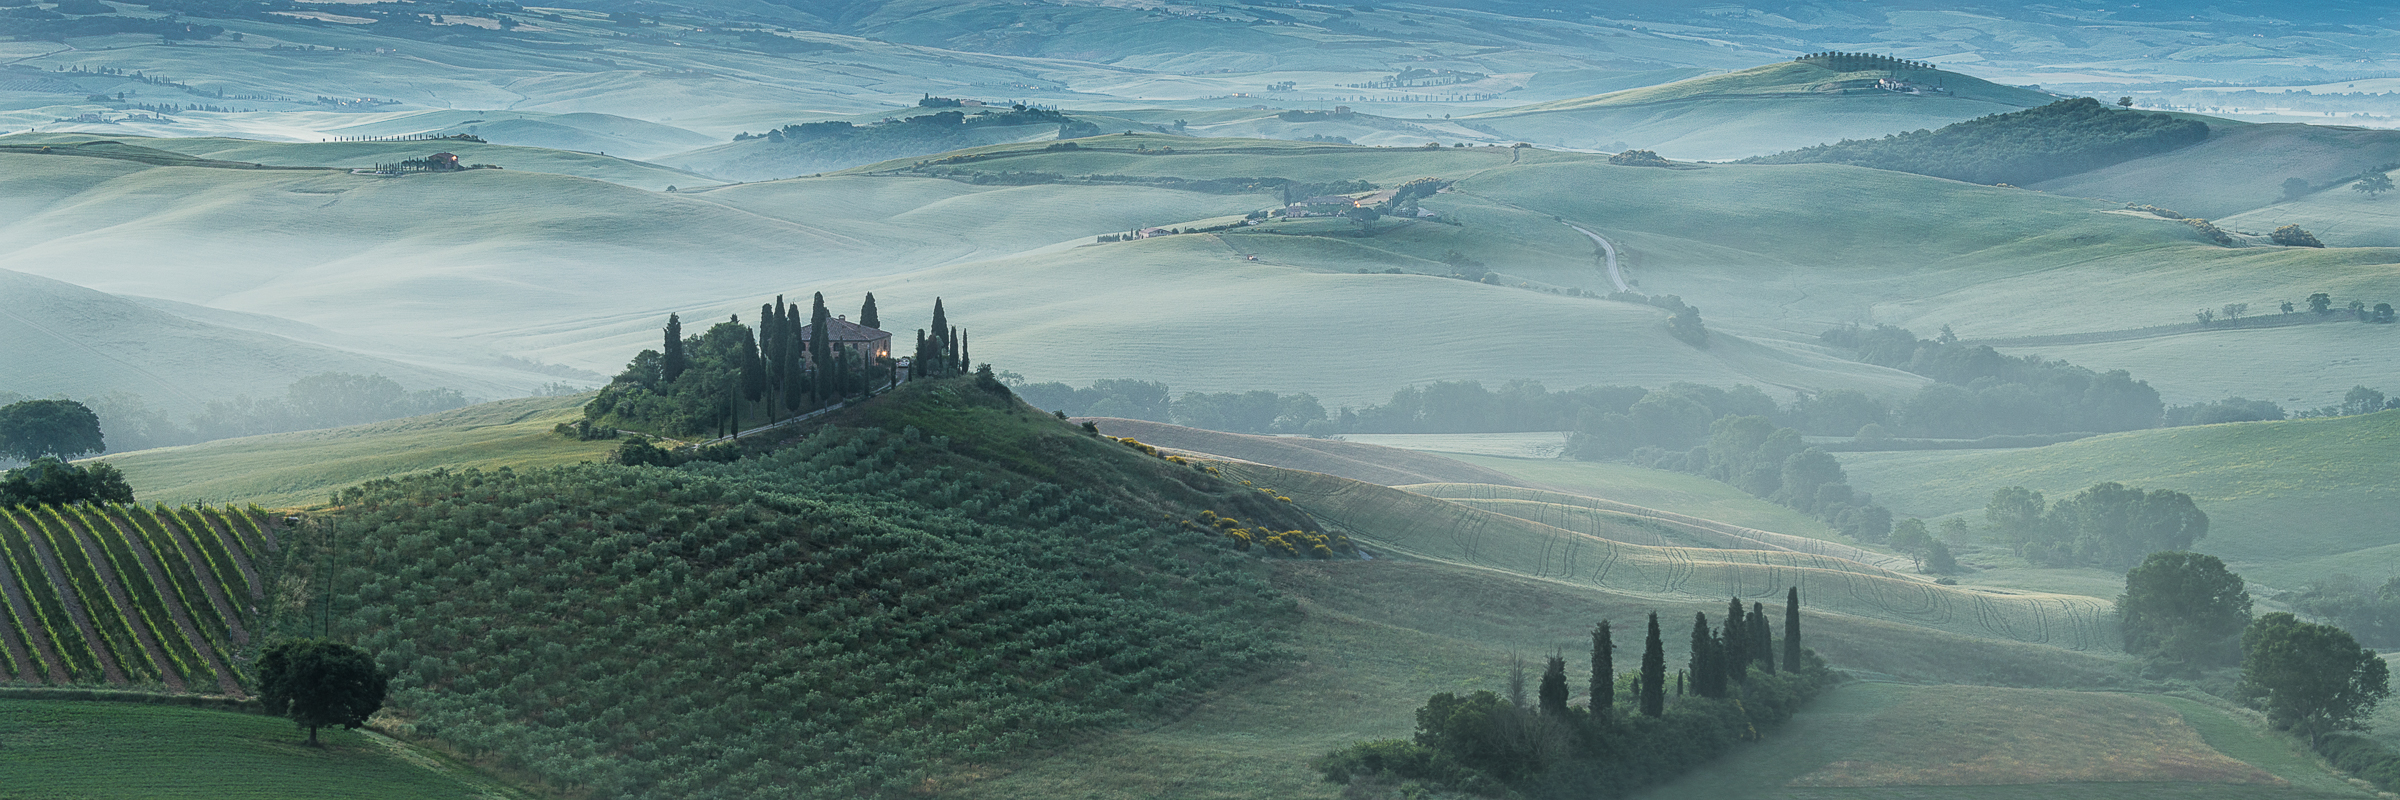 Misty Morning in the Val d'Orcia